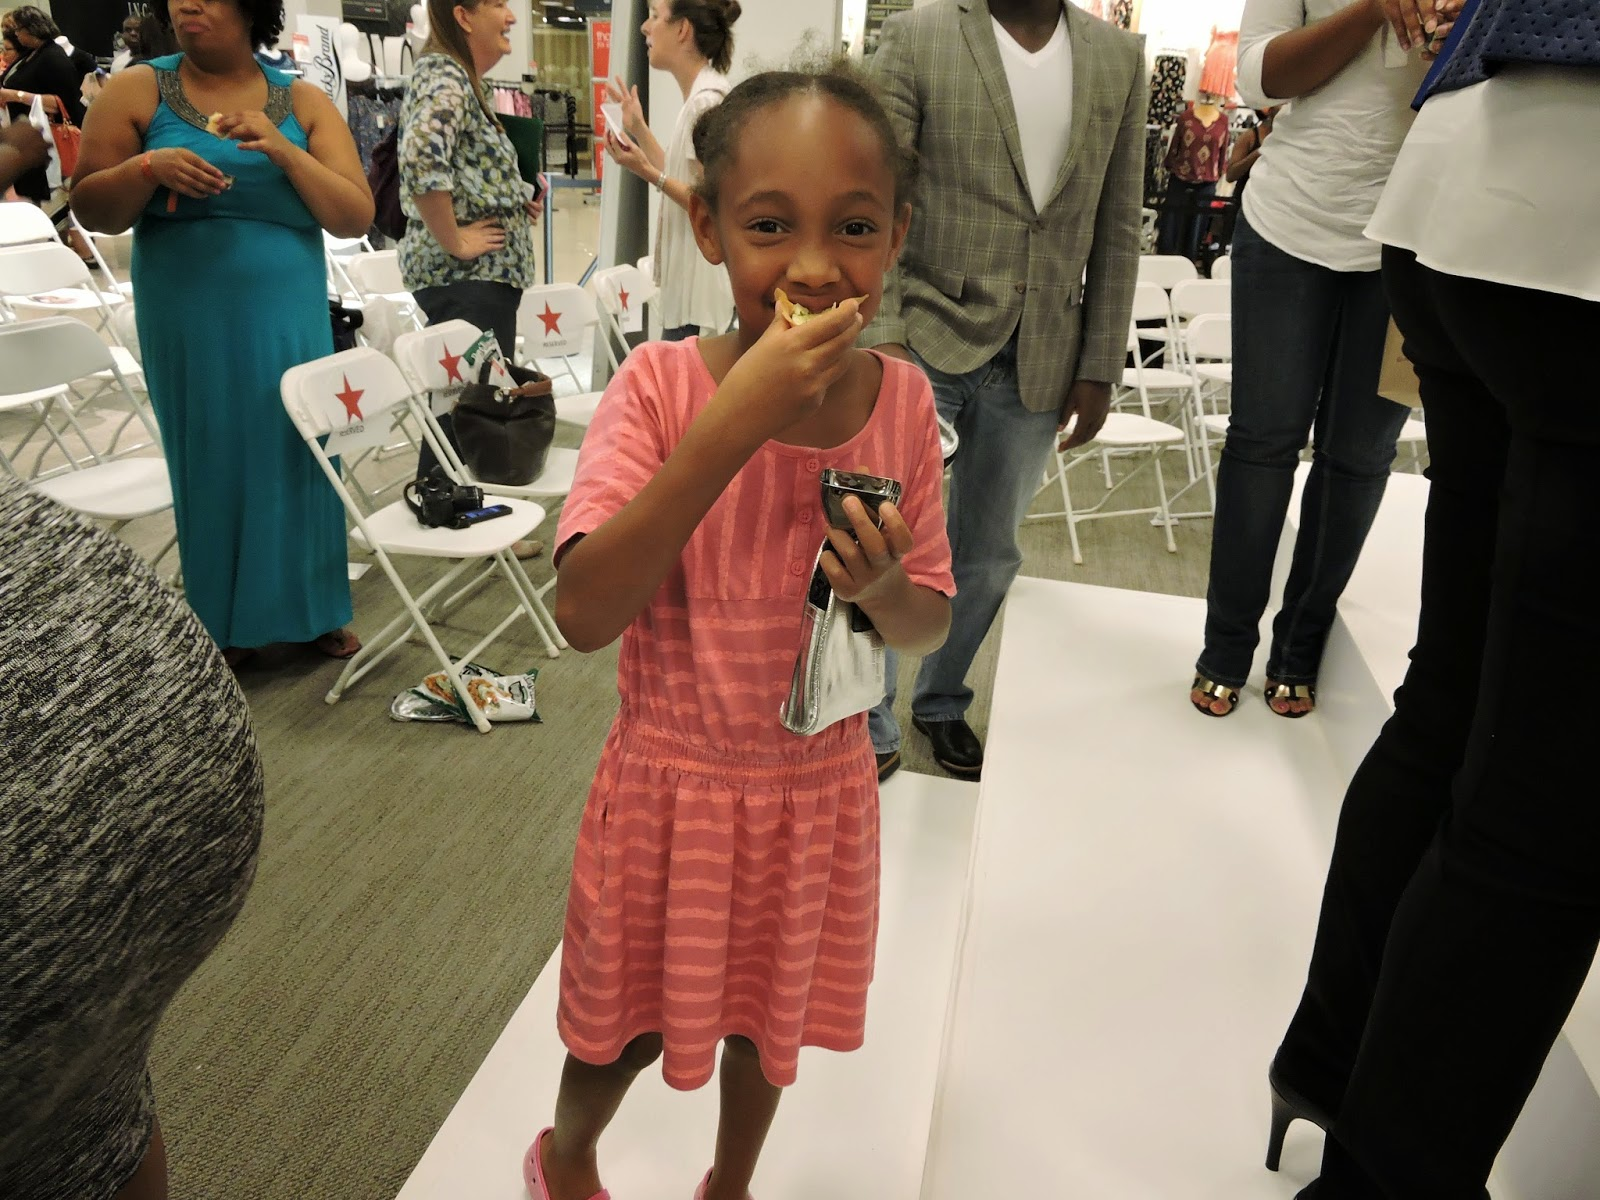 Macy's Fall Fashion Show Event with Emme Recap #MacysEvents @SheSpeaksUp @Macys via www.Productreviewmom.com